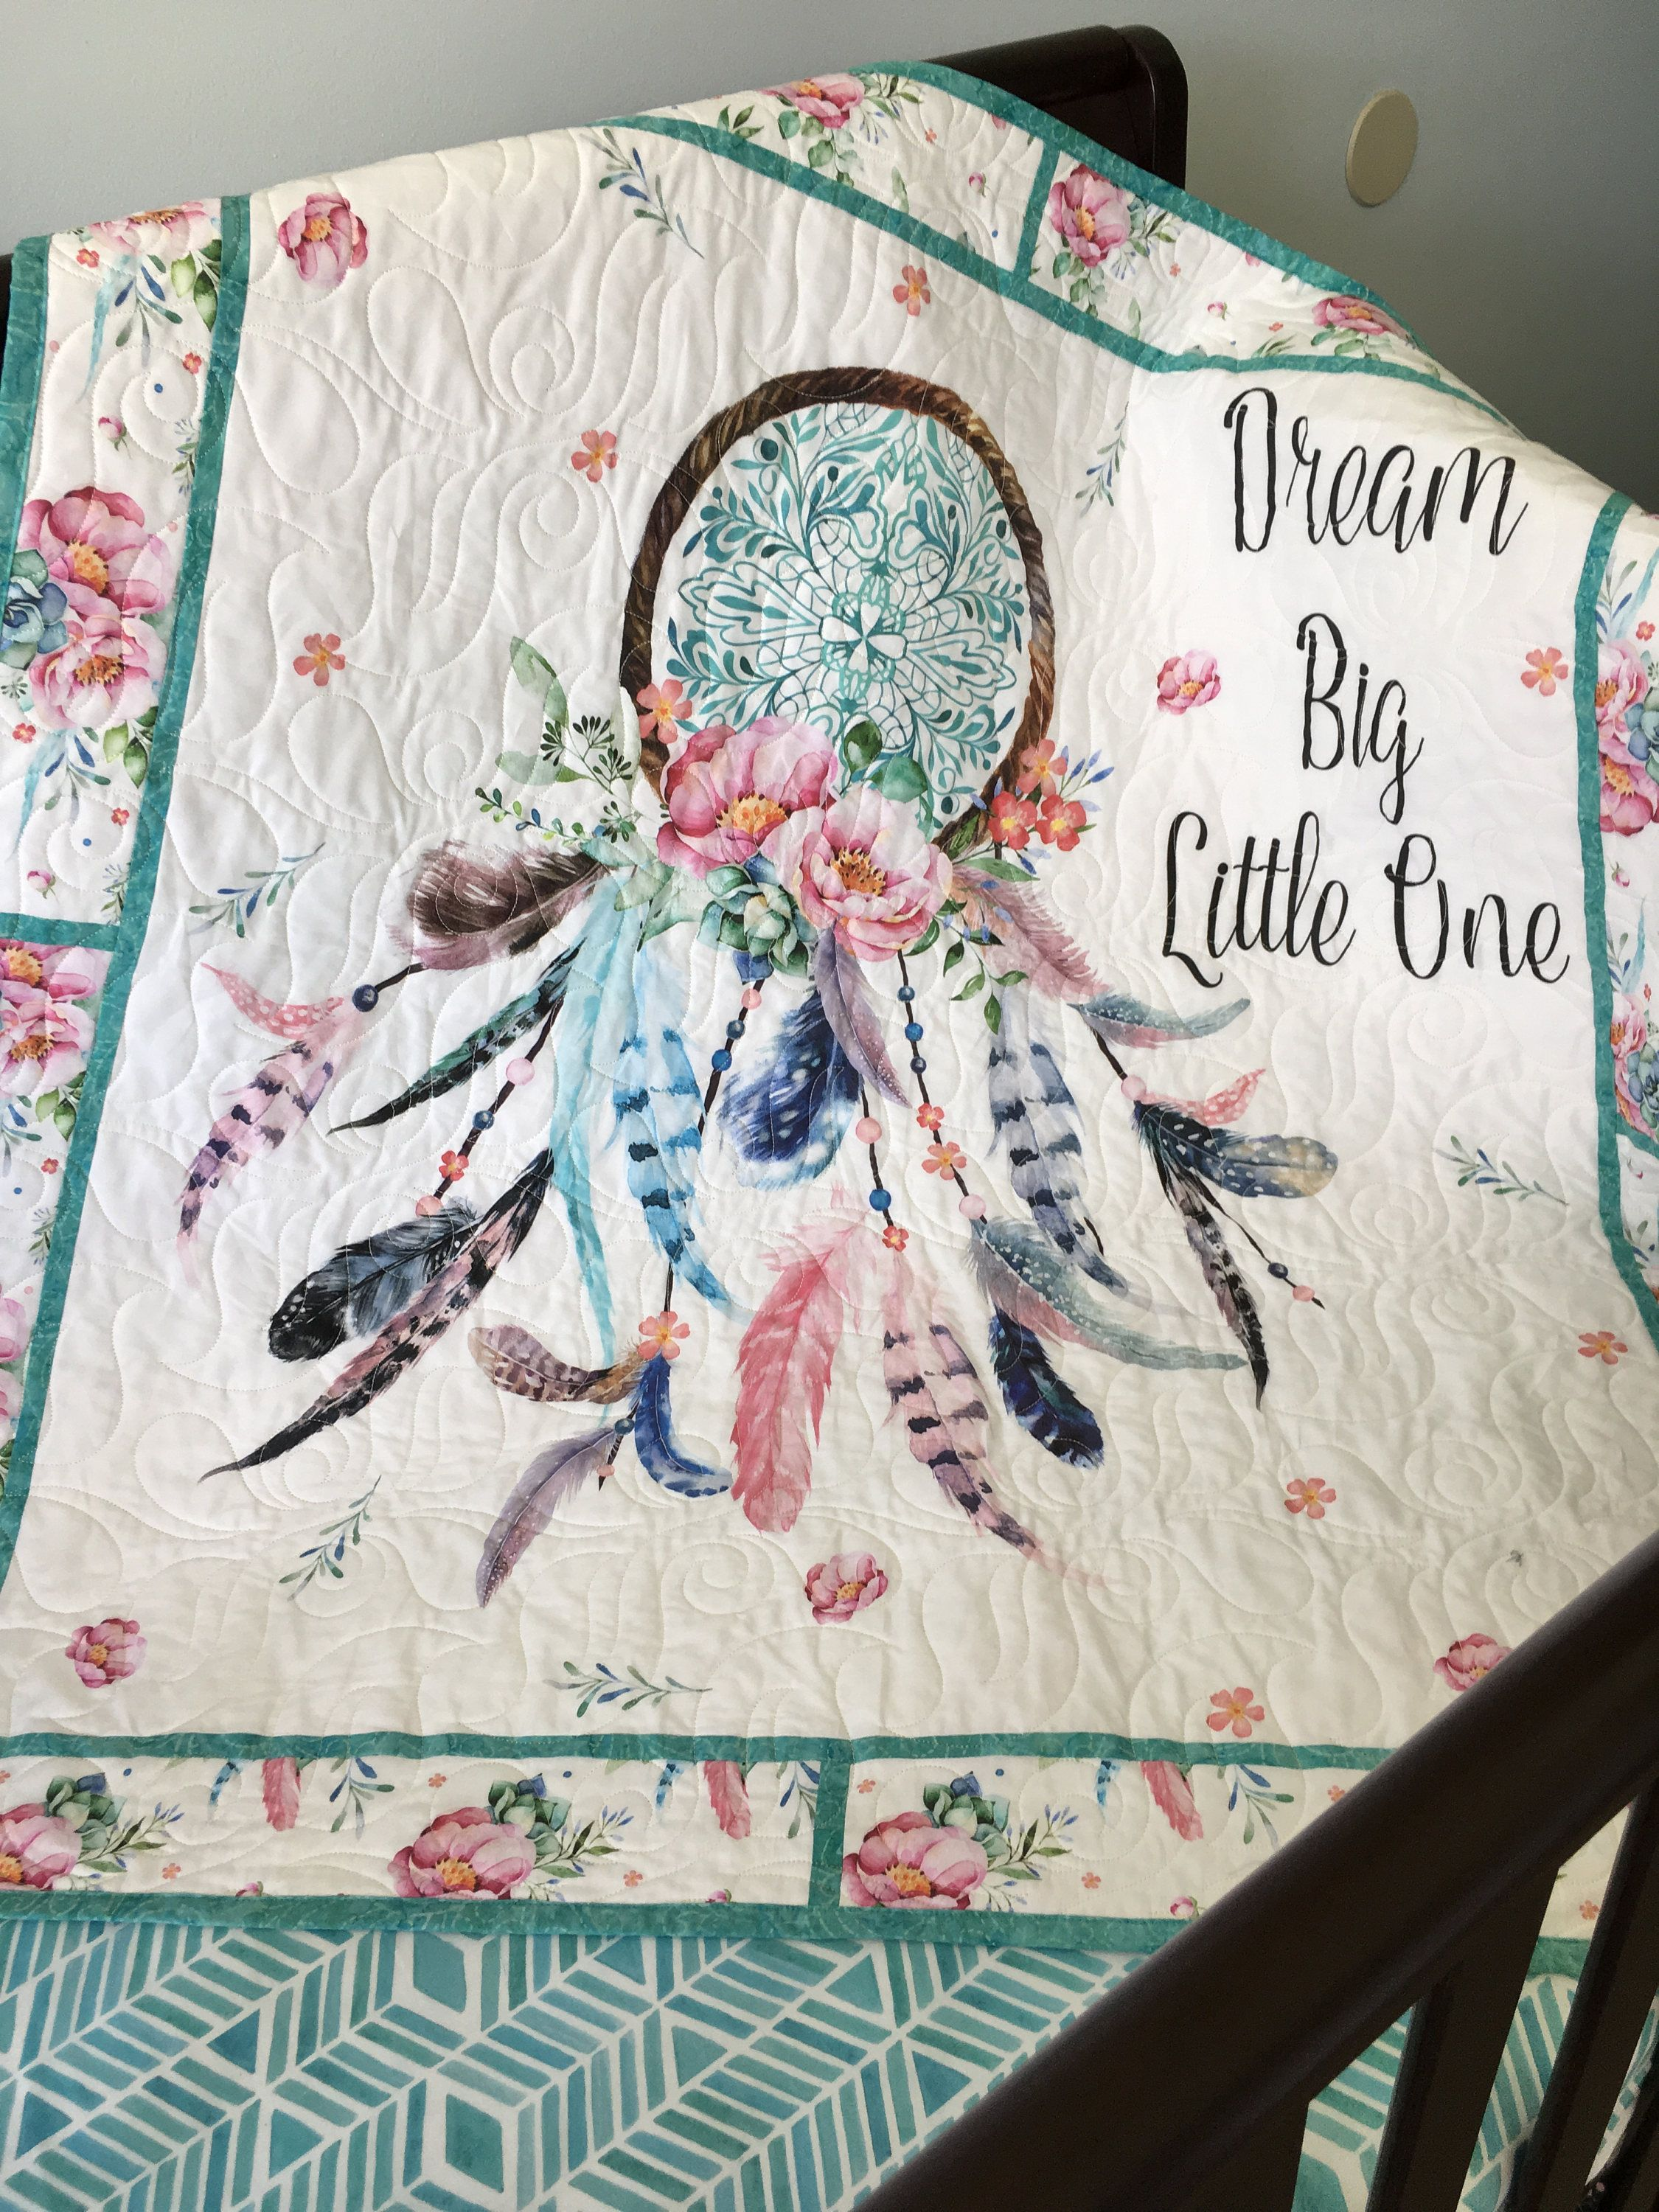 Dream Catcher Crib Bedding Best Dream Big Little One Dream Catcher Baby Girl Nursery Aqua Pink Decorating Design